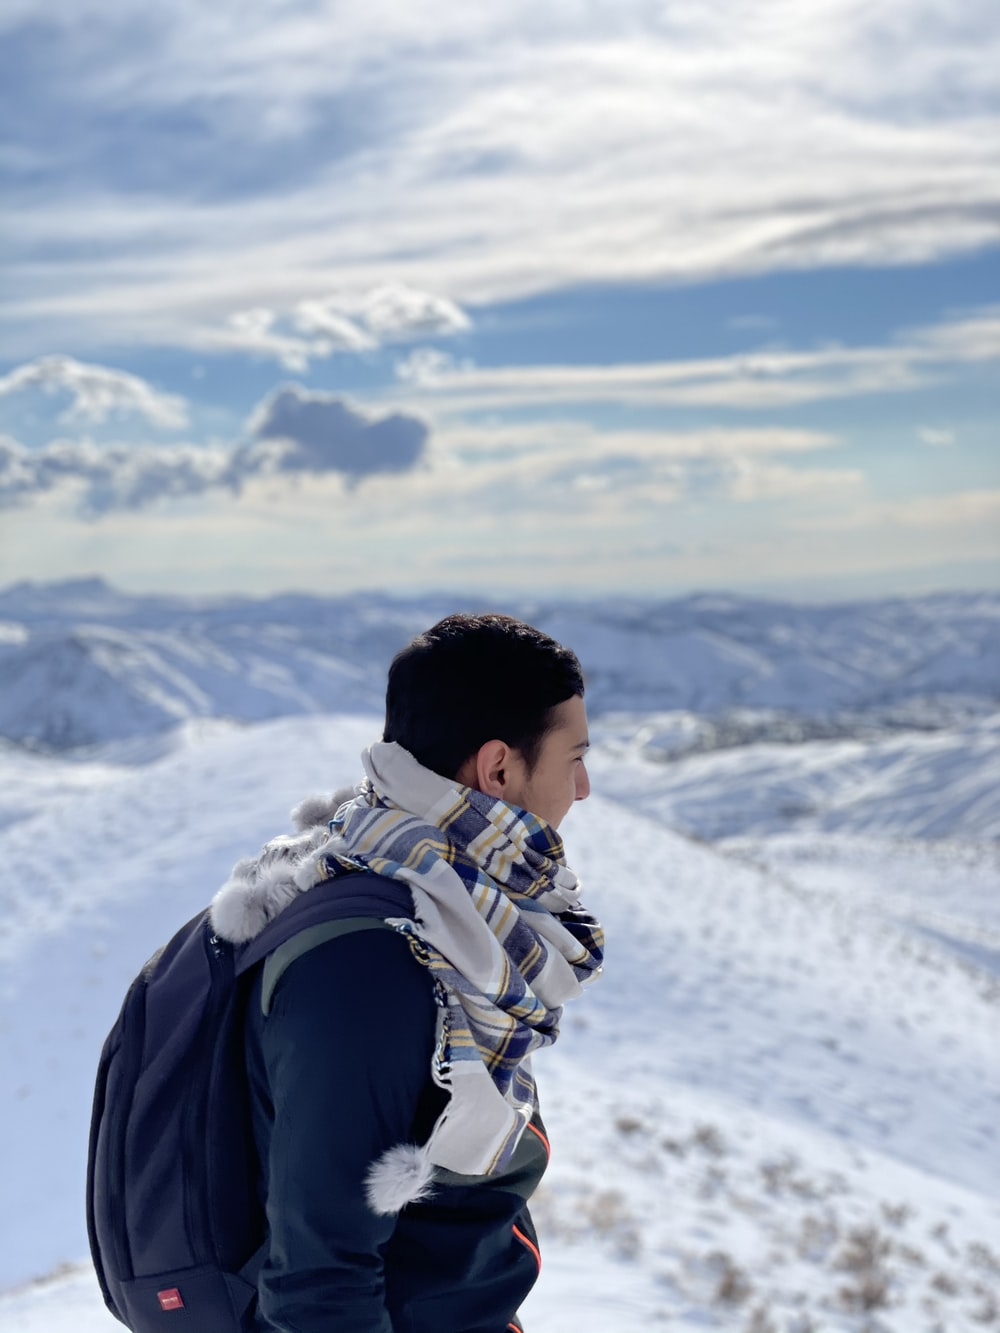 man in black jacket carrying backpack on snow covered mountain during daytime